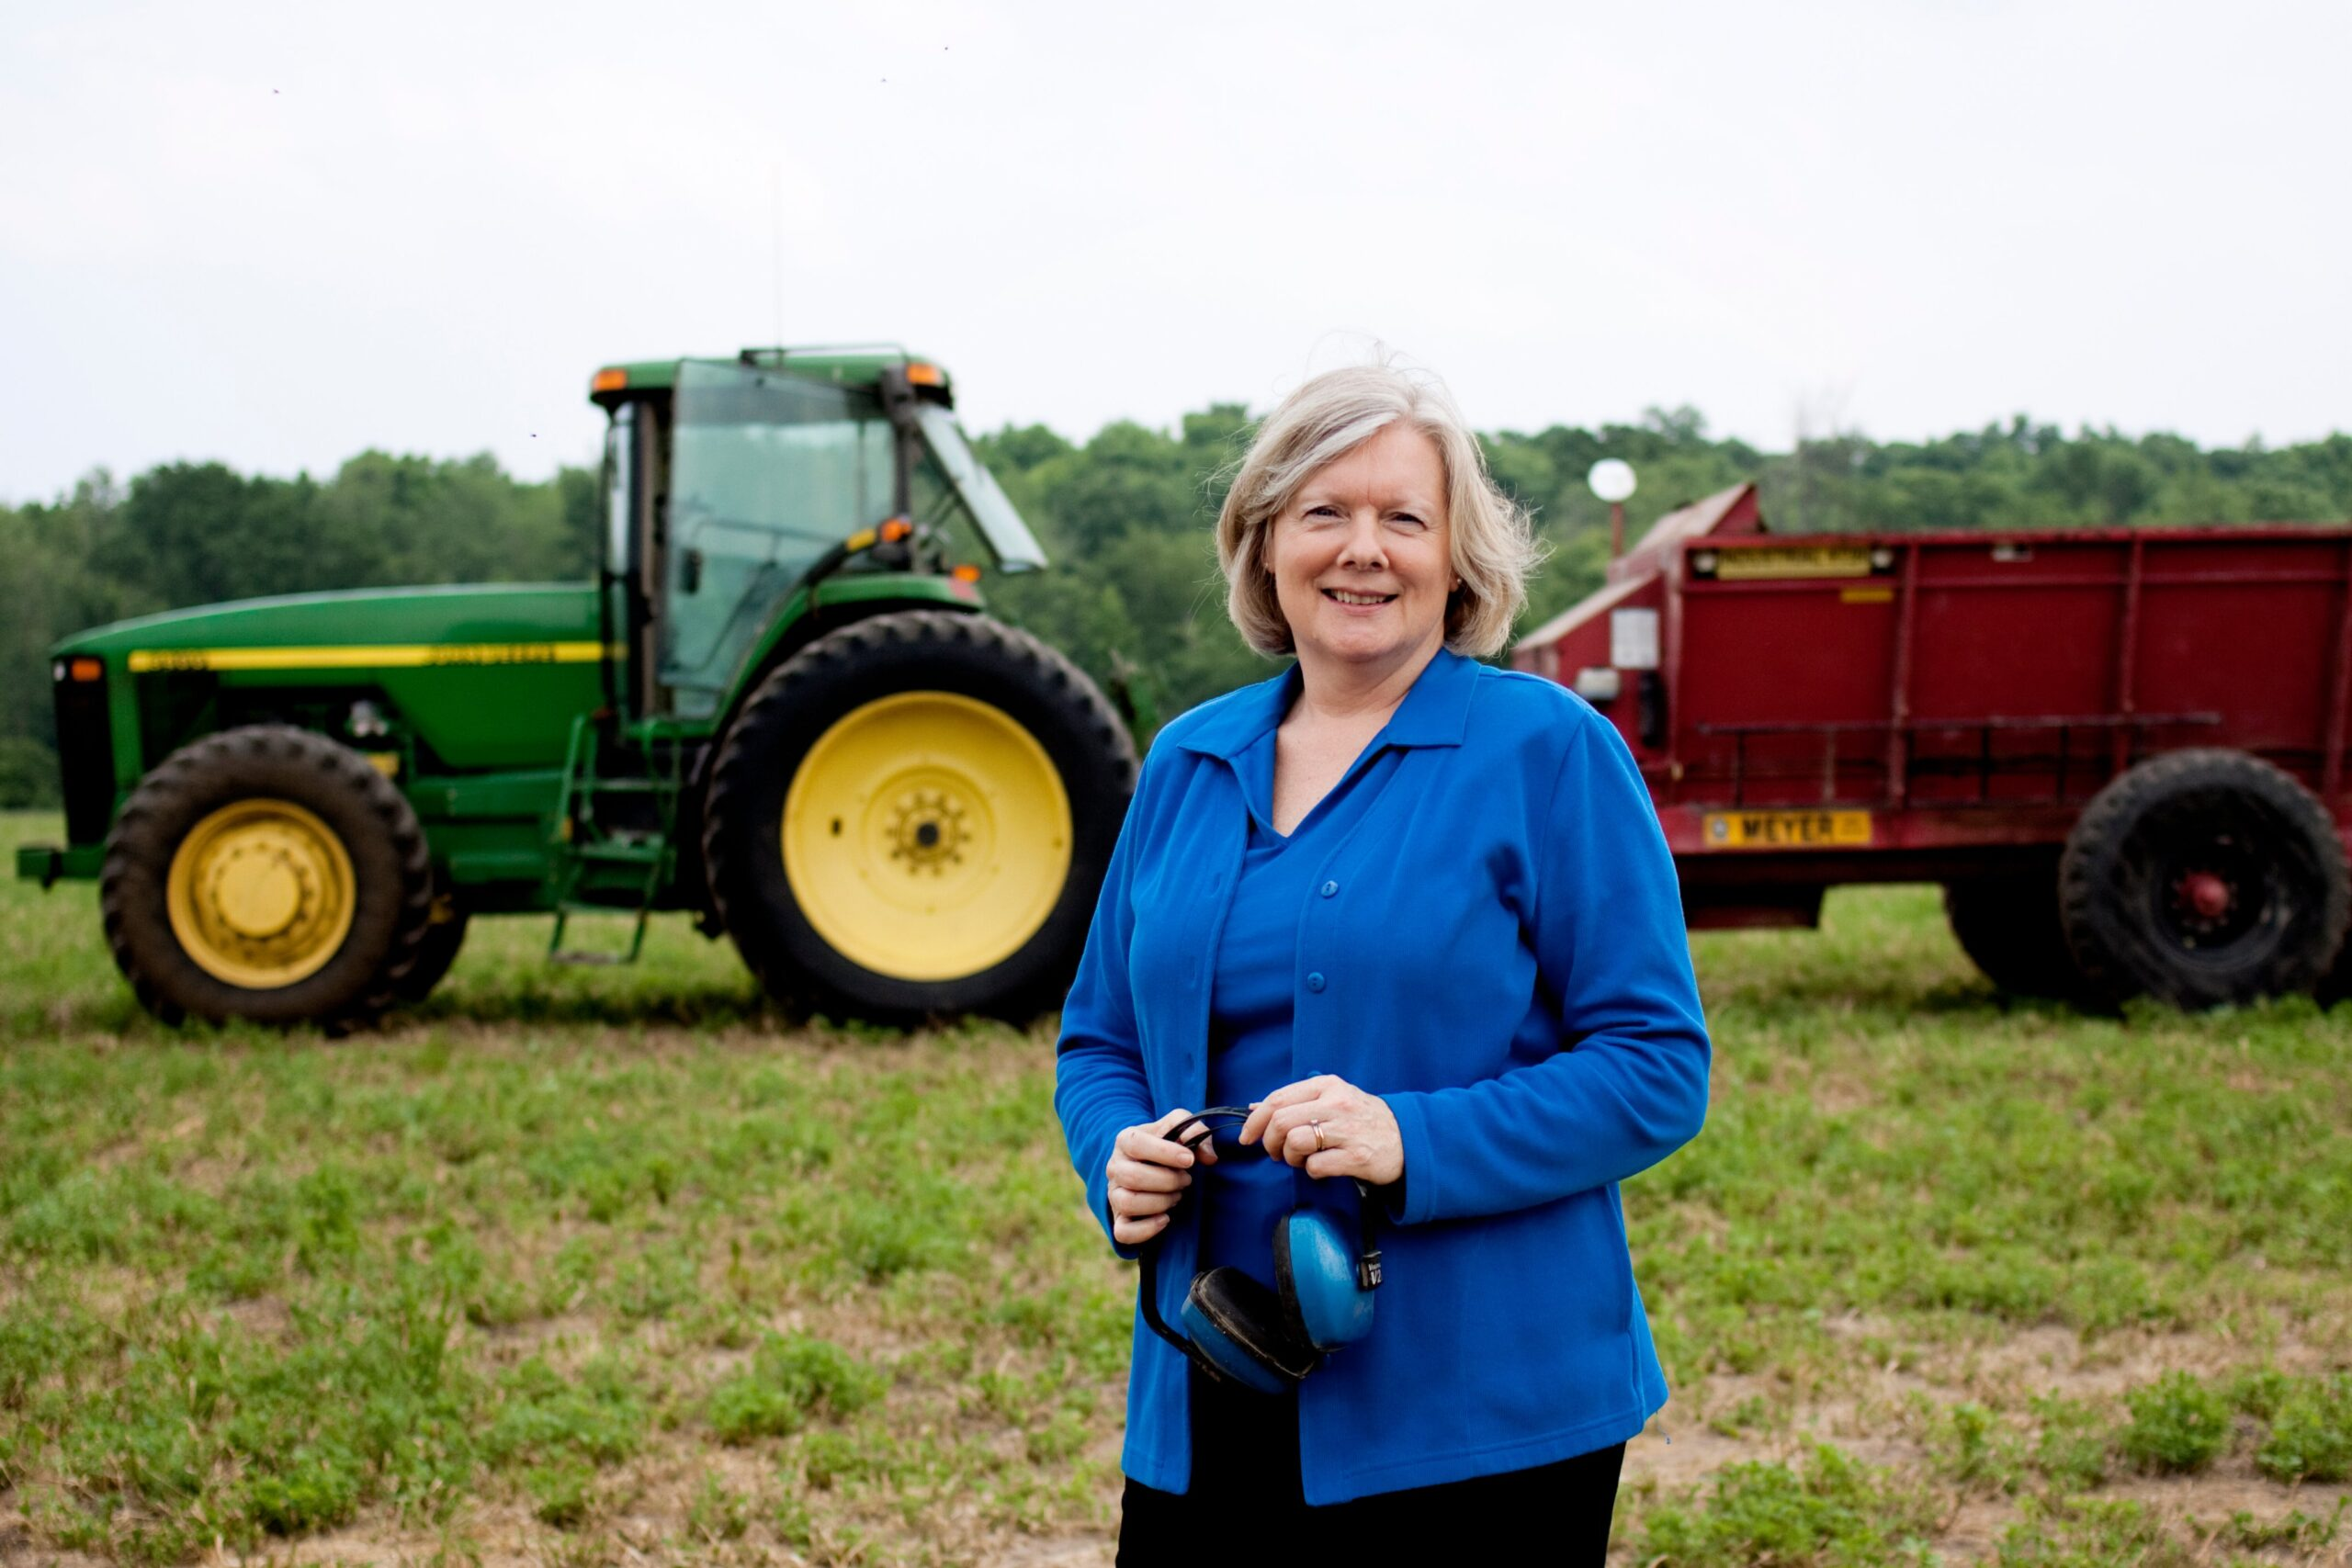 Marjorie McCullagh sanding in front of tractors on farmland. Image credit: U-M School of Nursing